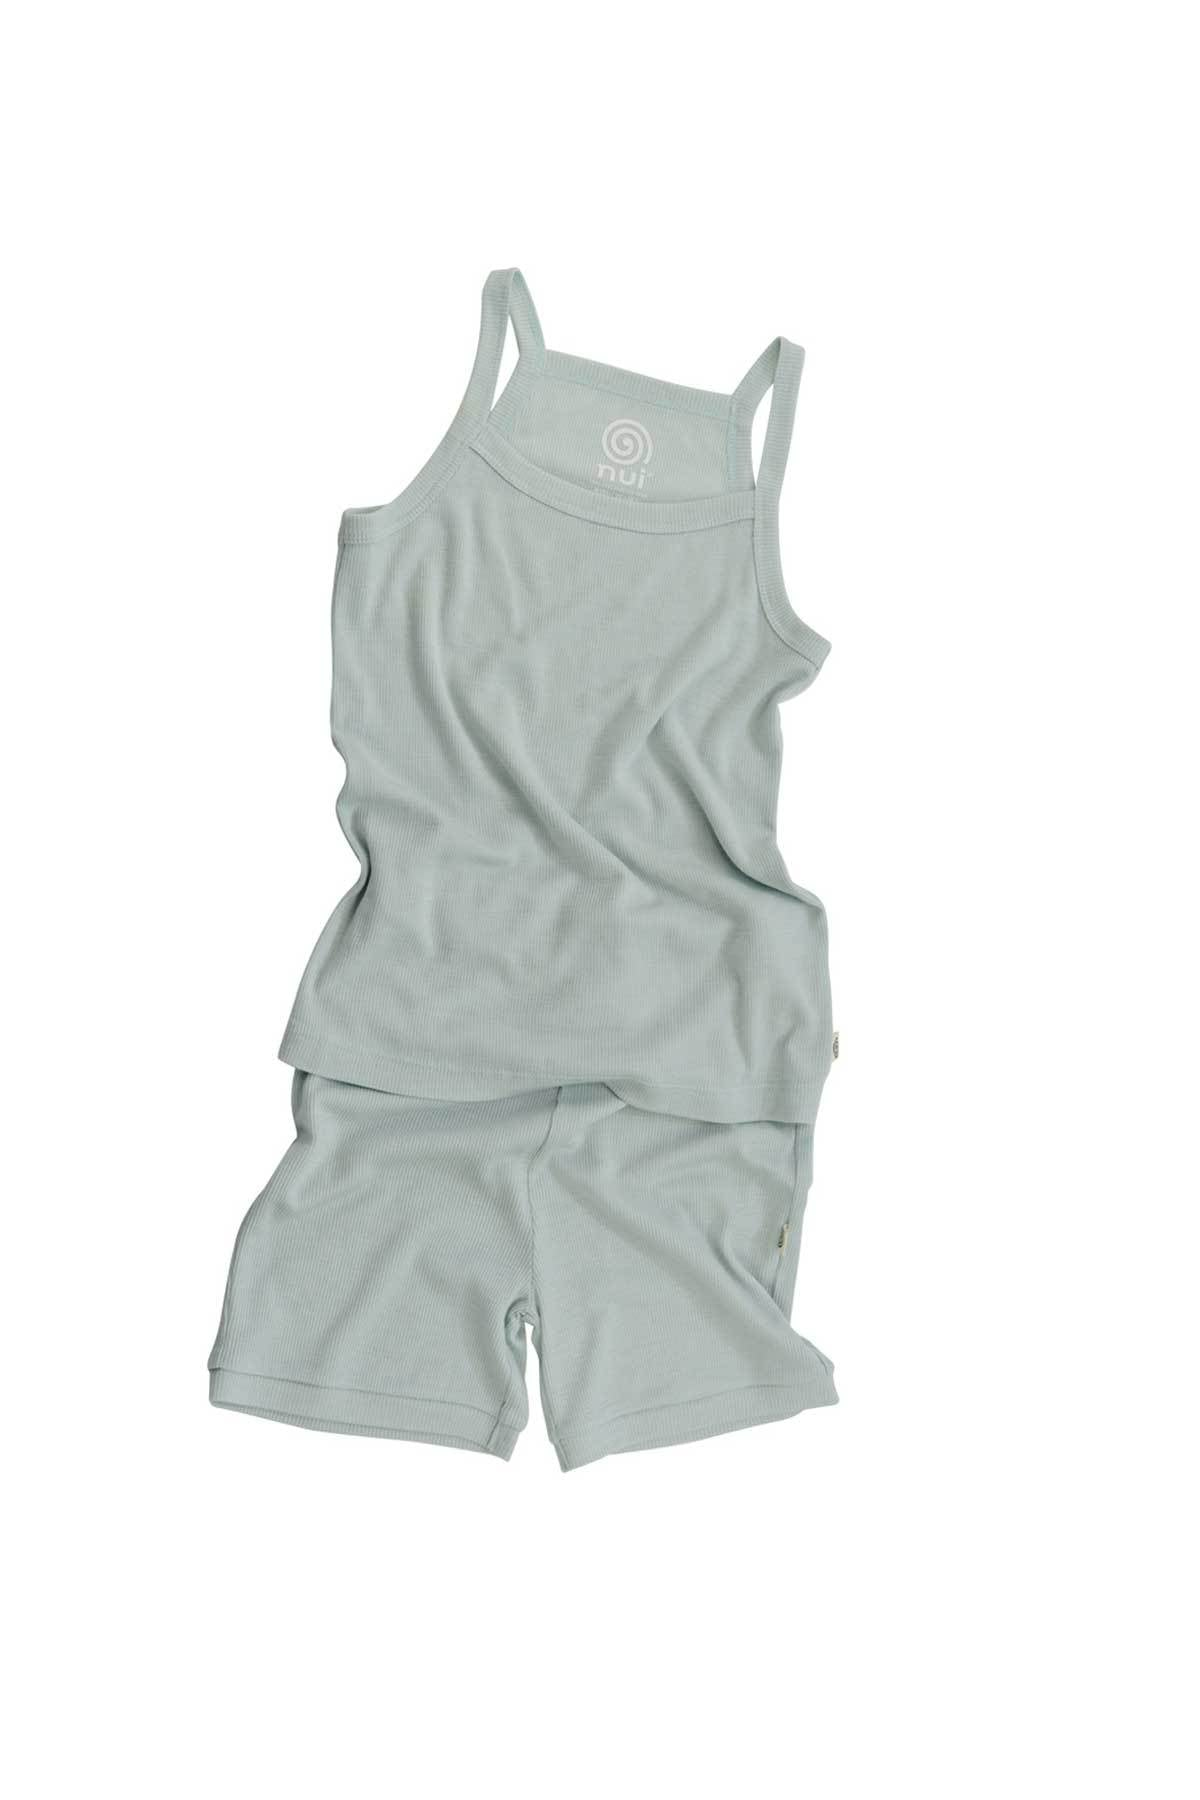 Nui Merinosilk Cami Sleep Set